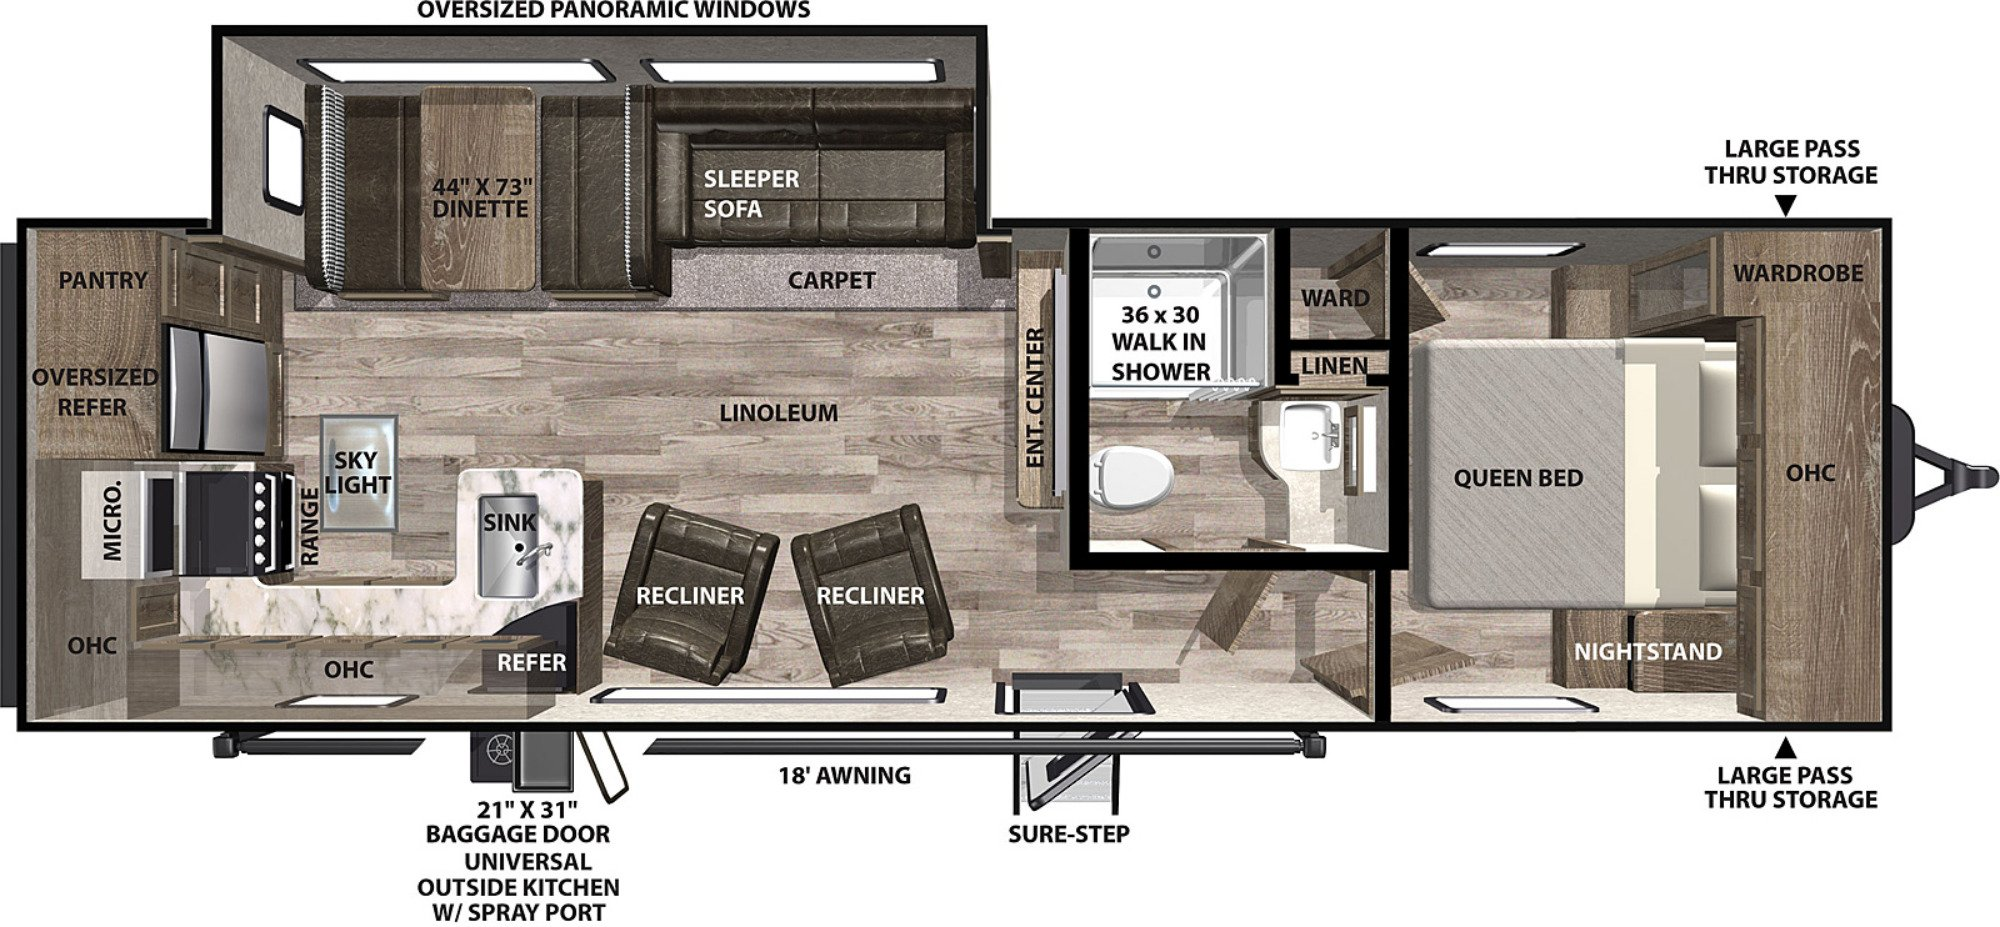 View Floor Plan for 2021 FOREST RIVER VIBE 26RK